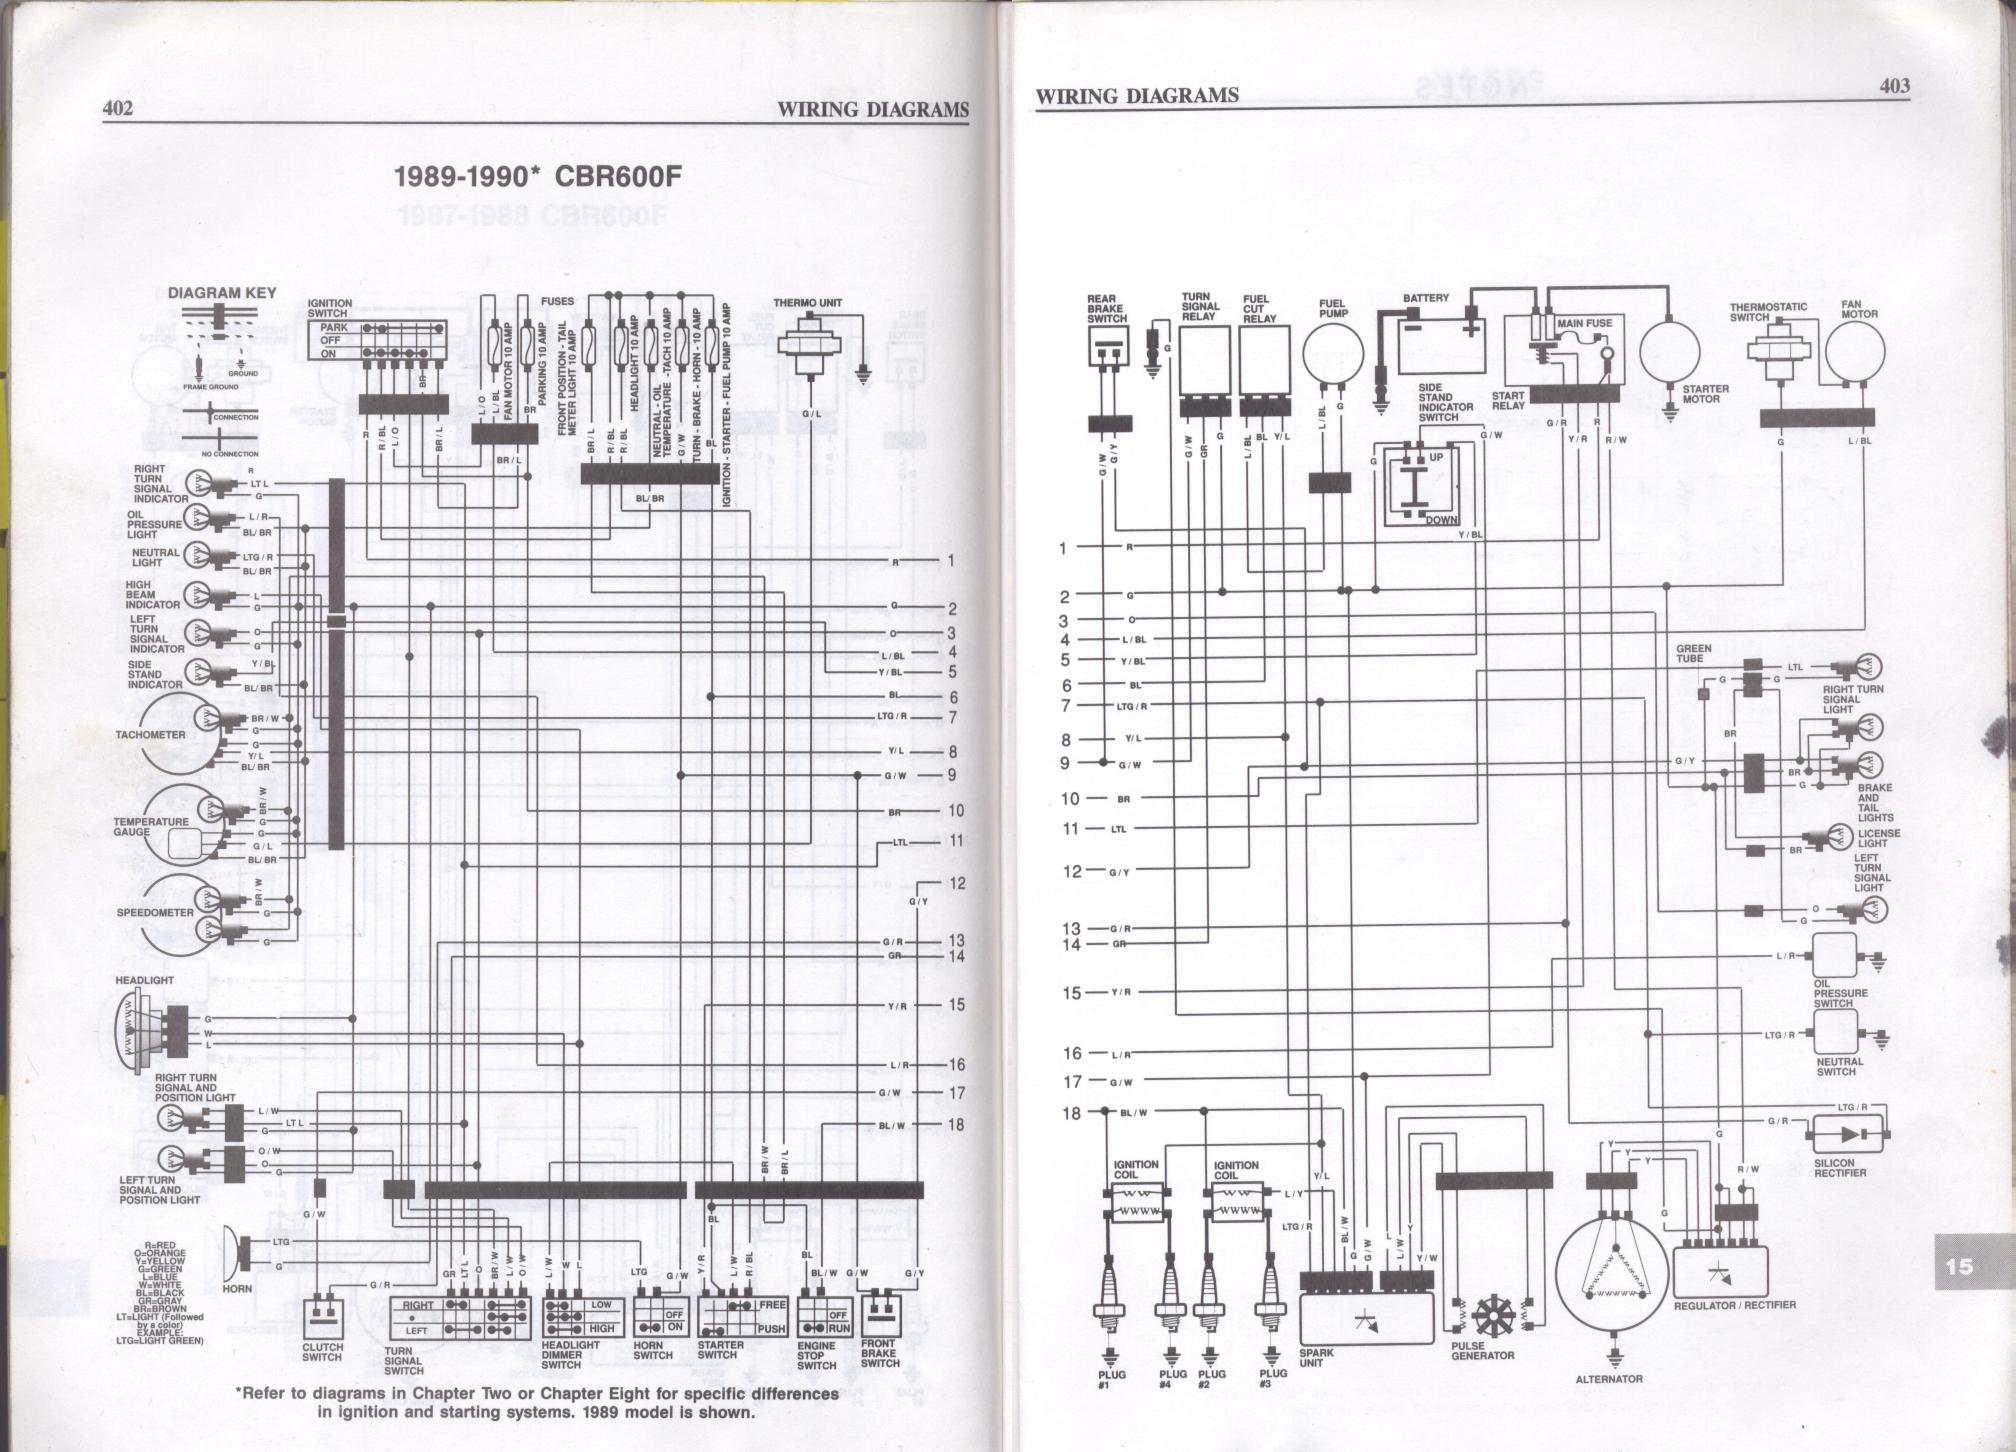 1980 honda ct110 wiring diagram 1980 automotive wiring diagrams 1989 1990 honda cbr600f wiring diagrams